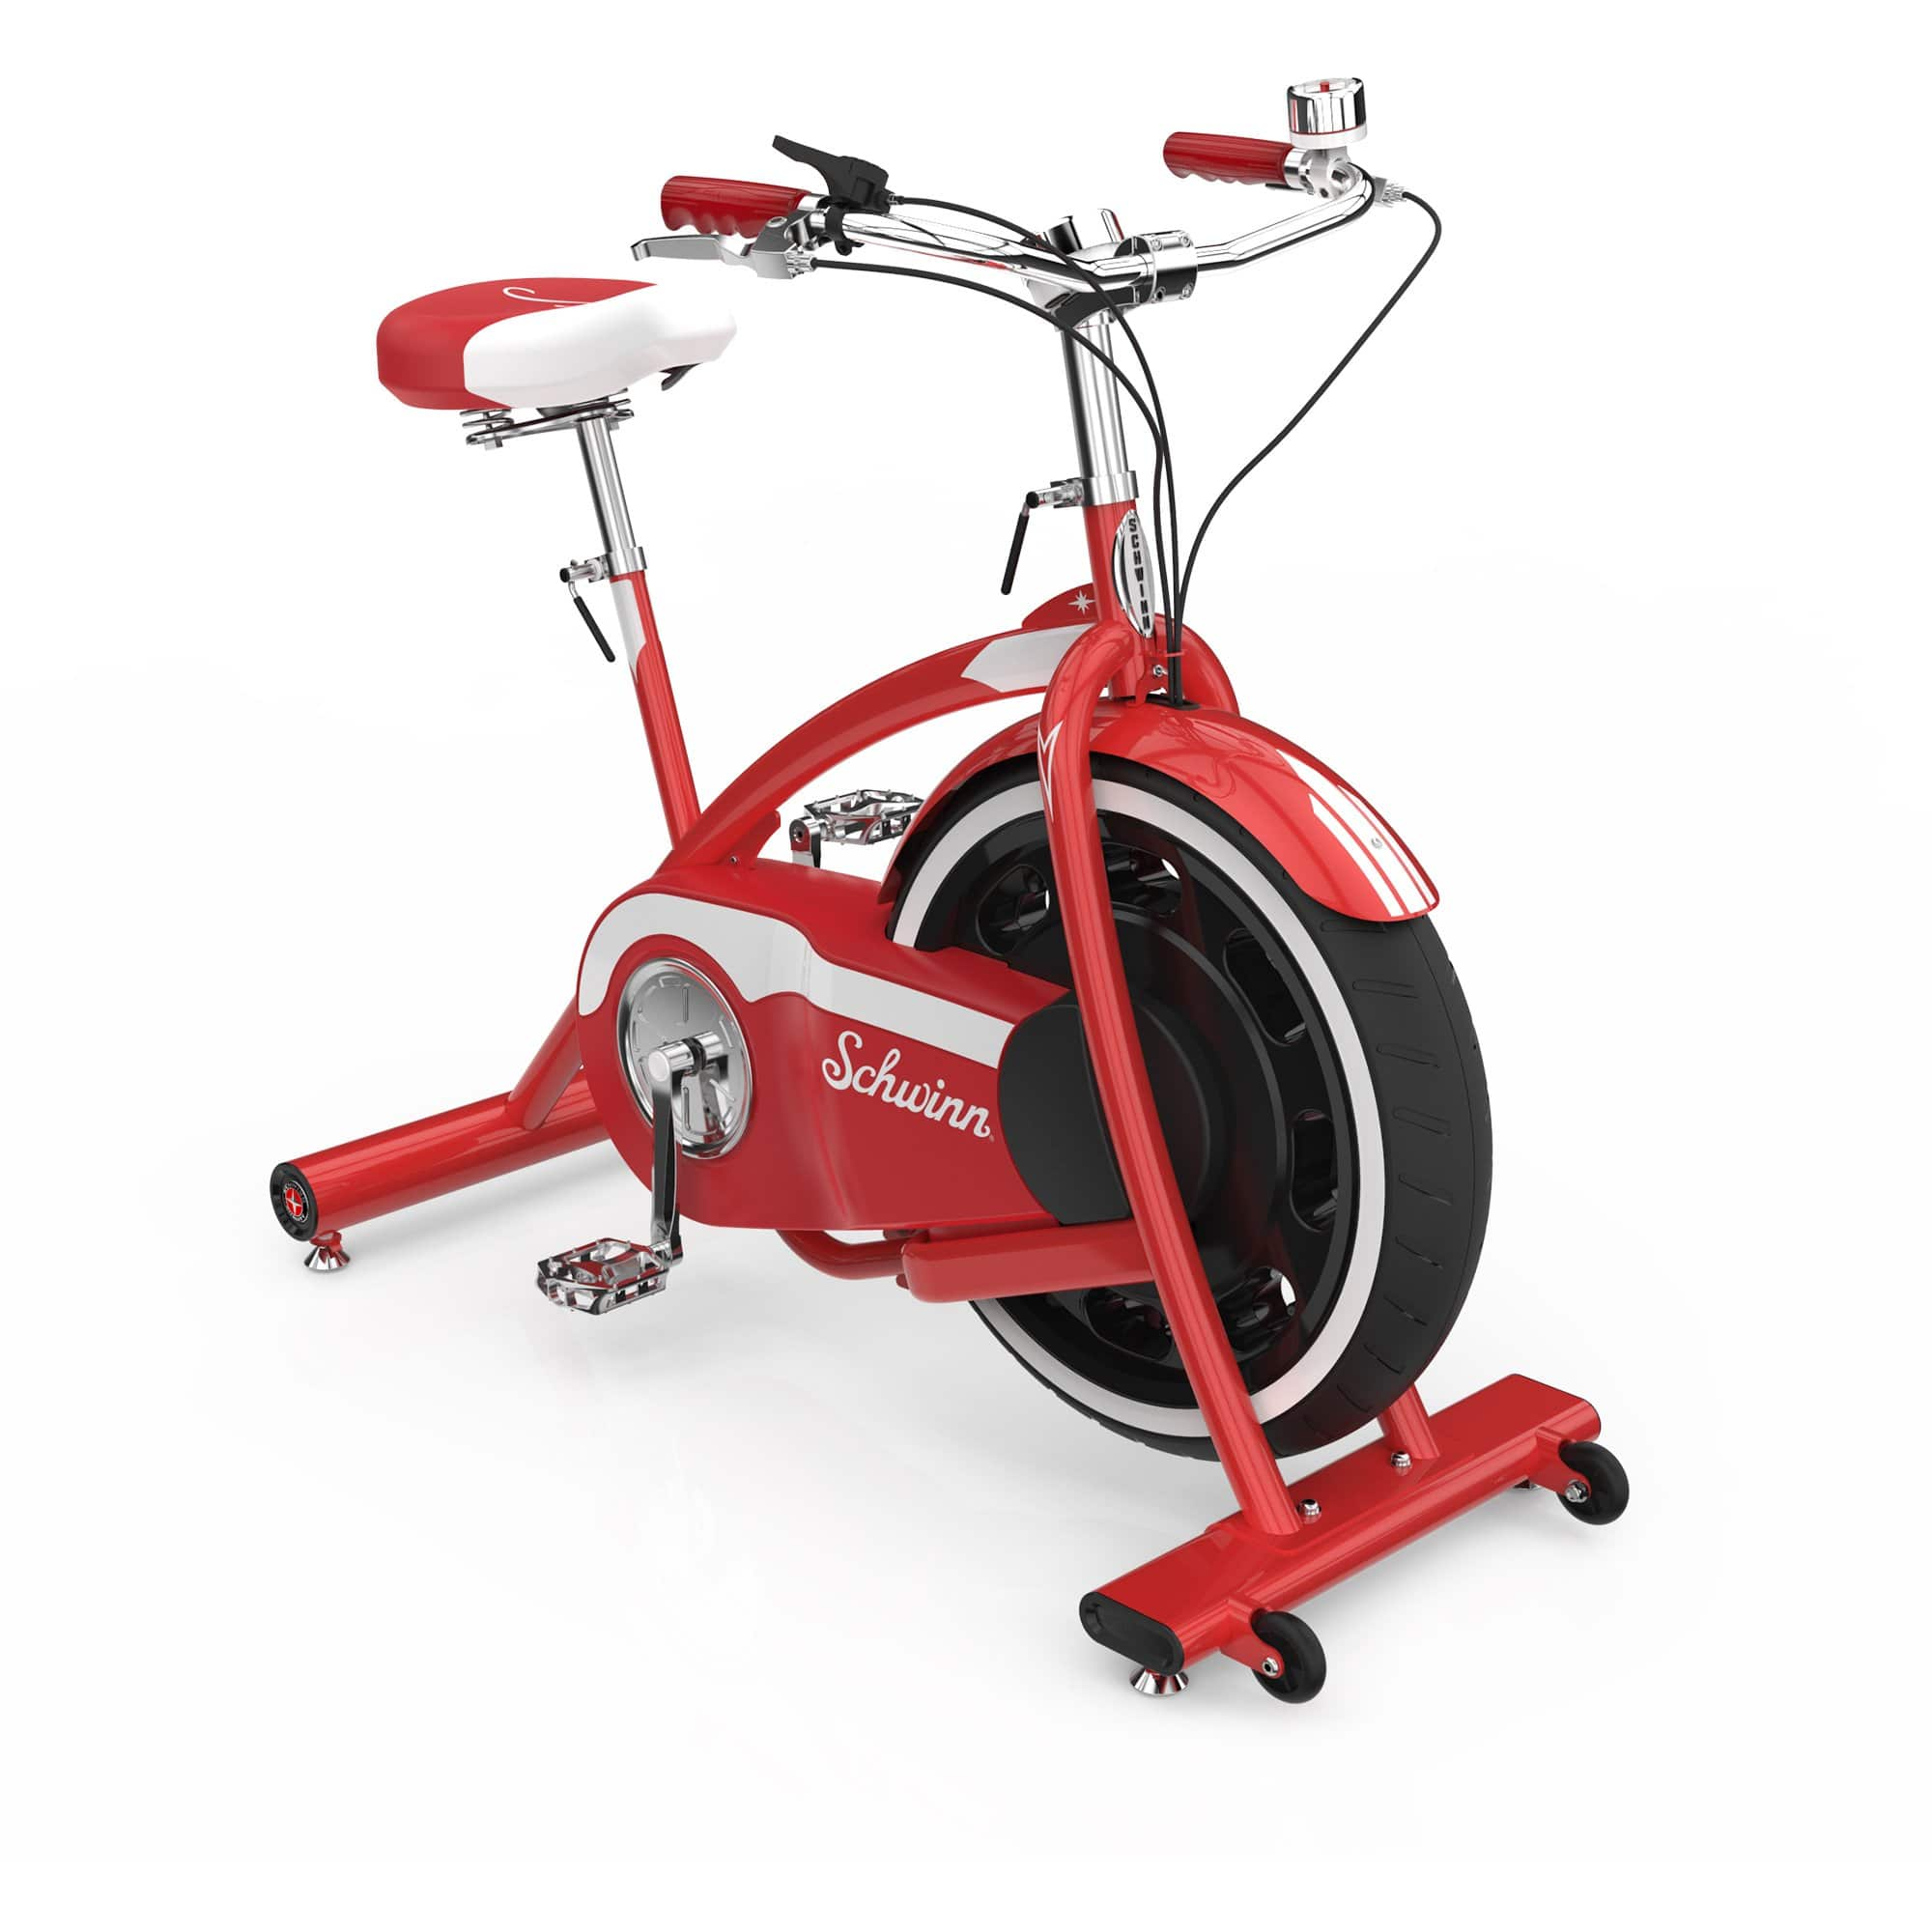 Schwinnfitness: Schwinn Classic Cruiser + Accessory Kit for $299 with Code. Free Shipping.